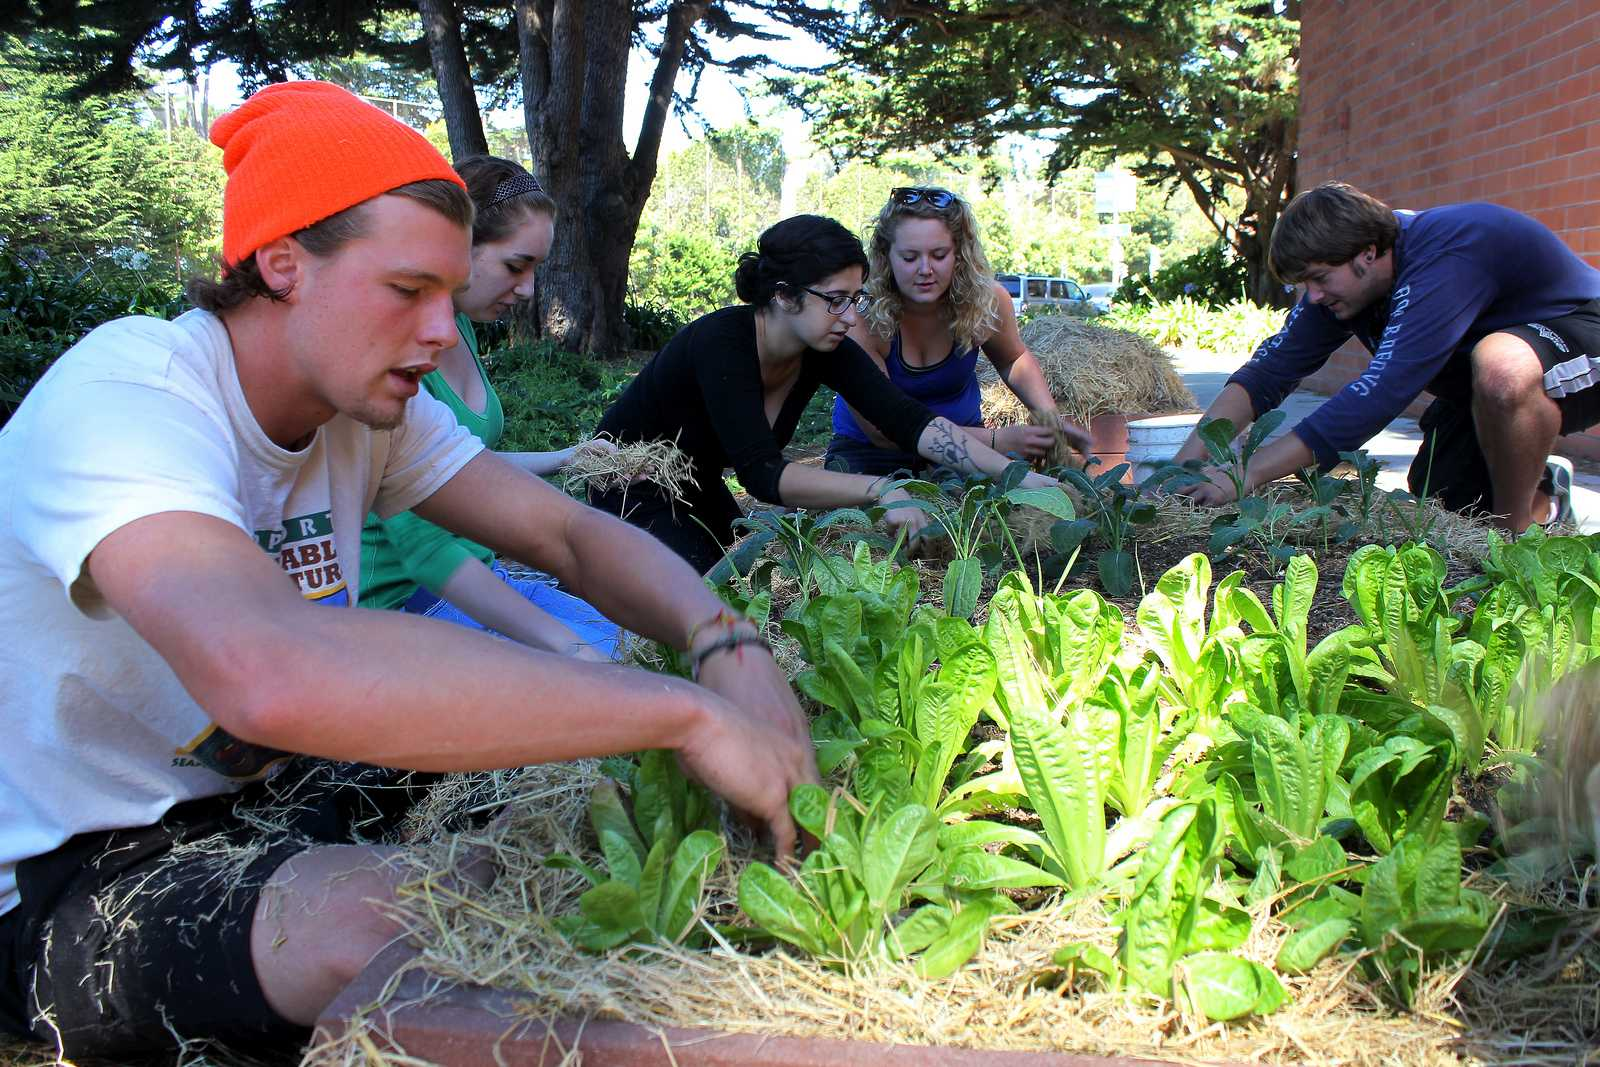 Tyler Wescott, Audrey Janner, Sahar Navid, Morgan Kelley, and Michael Todd of ECO Students add straw to garden beds at the community garden behind Mary Park Hall Sunday Sept. 15, 2013.  ECO Students began growing vegetables and herbs behind Mary Park Hall after learning that the planters were not being used. Photo by Ryan Leibrich / Xpress